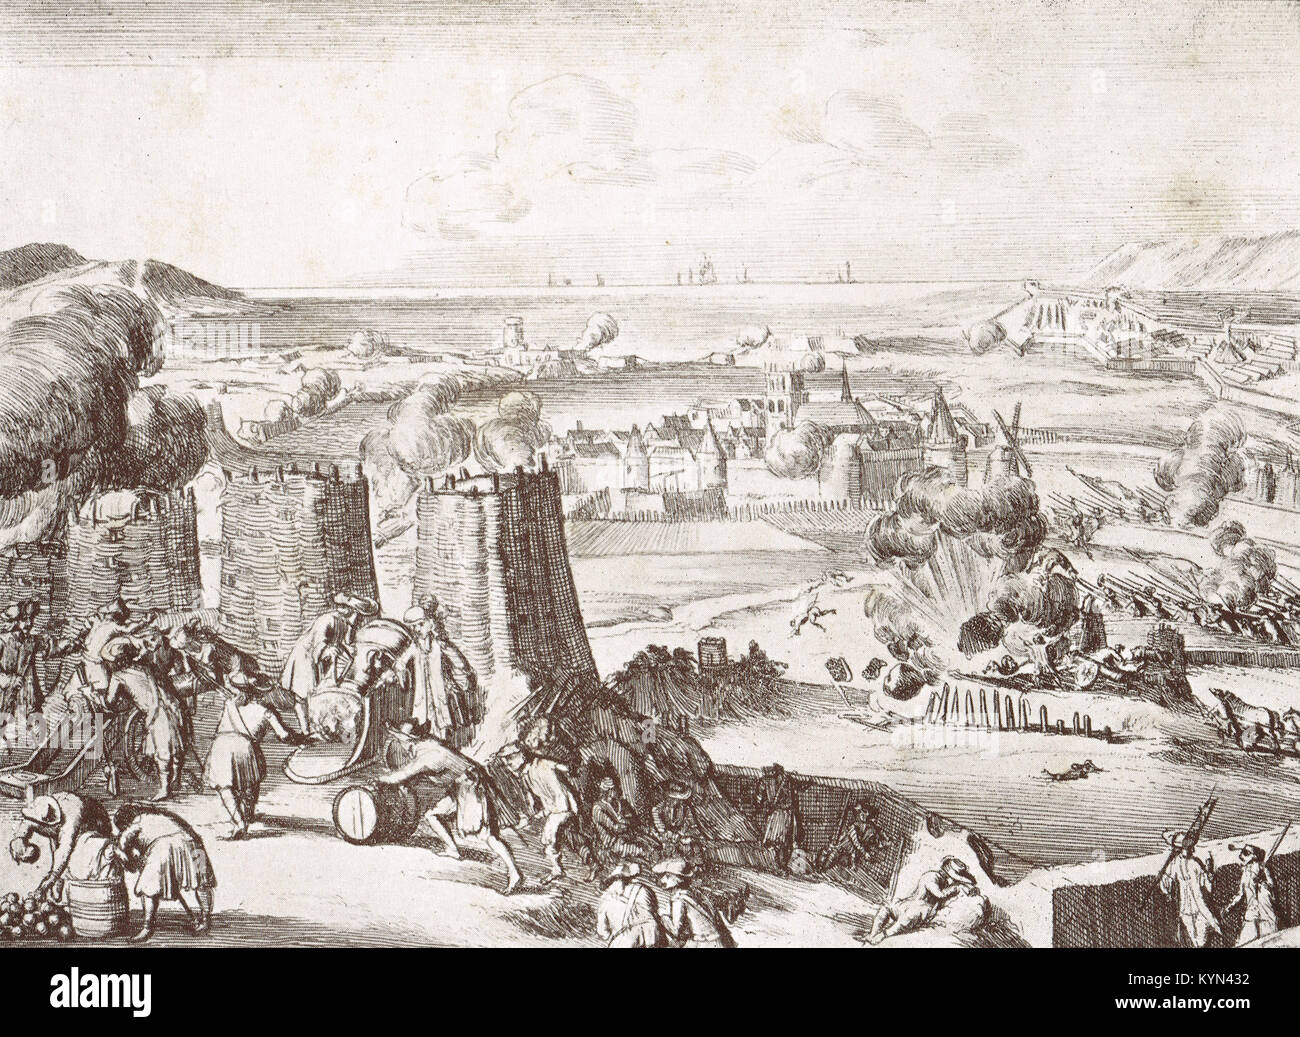 The Siege of Derry, 1689 AKA Londonderry - Stock Image